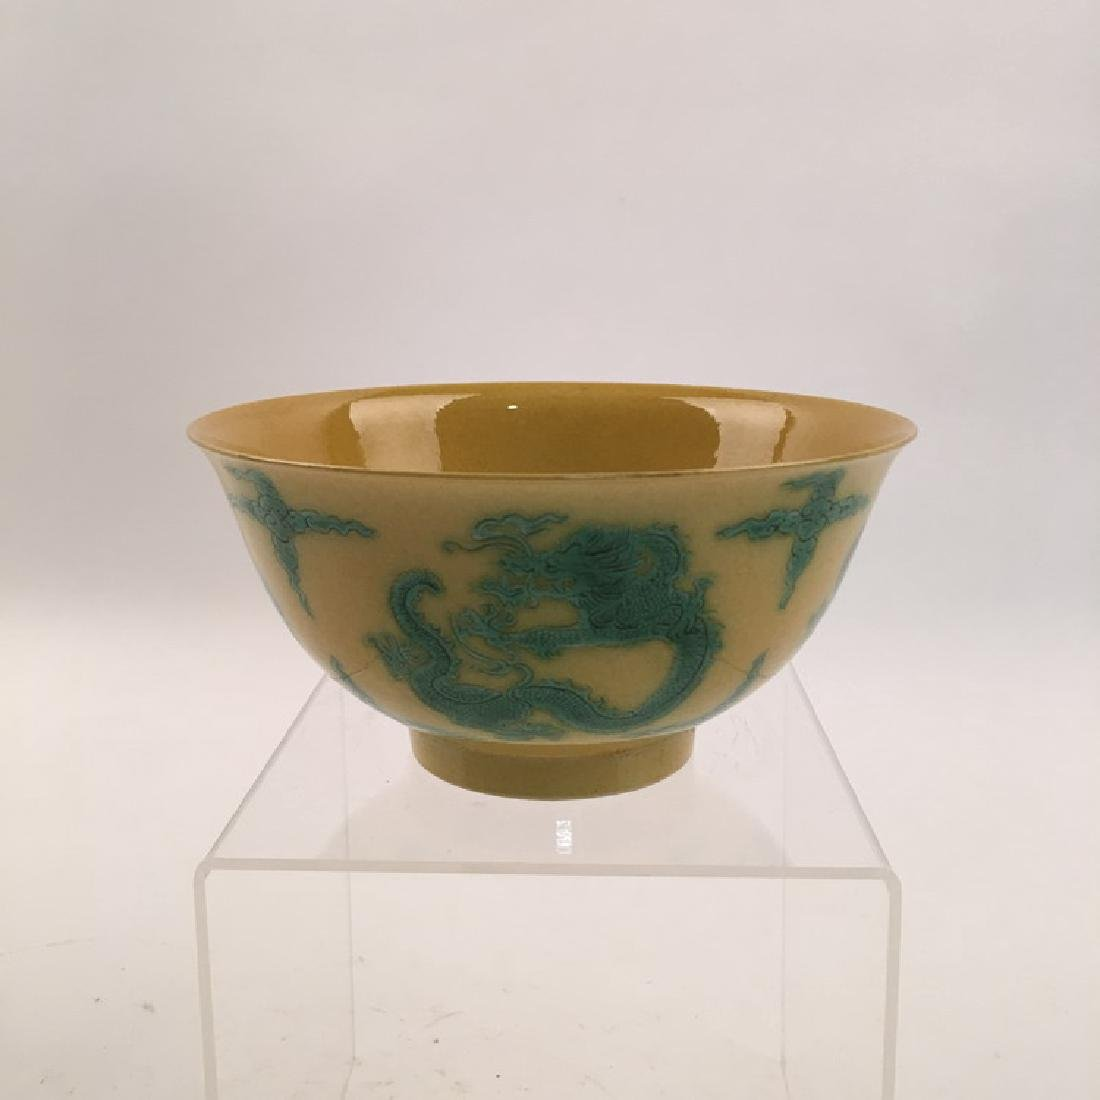 Chinese Yellow Glazed Bowl with Green Dragon